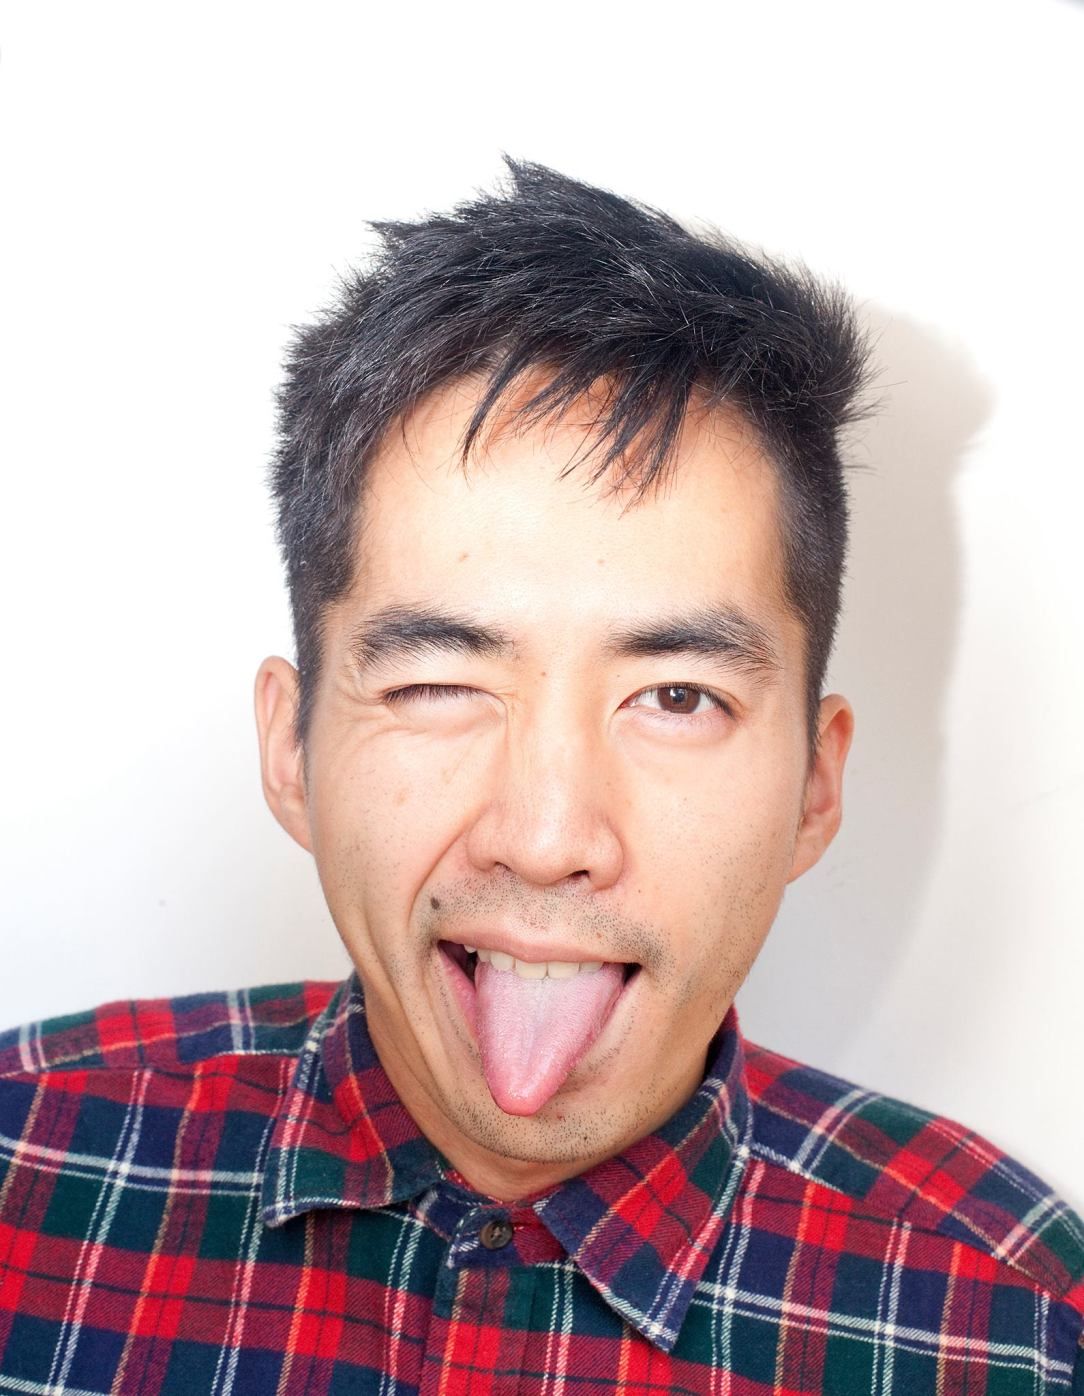 kevin-truong-cheeky